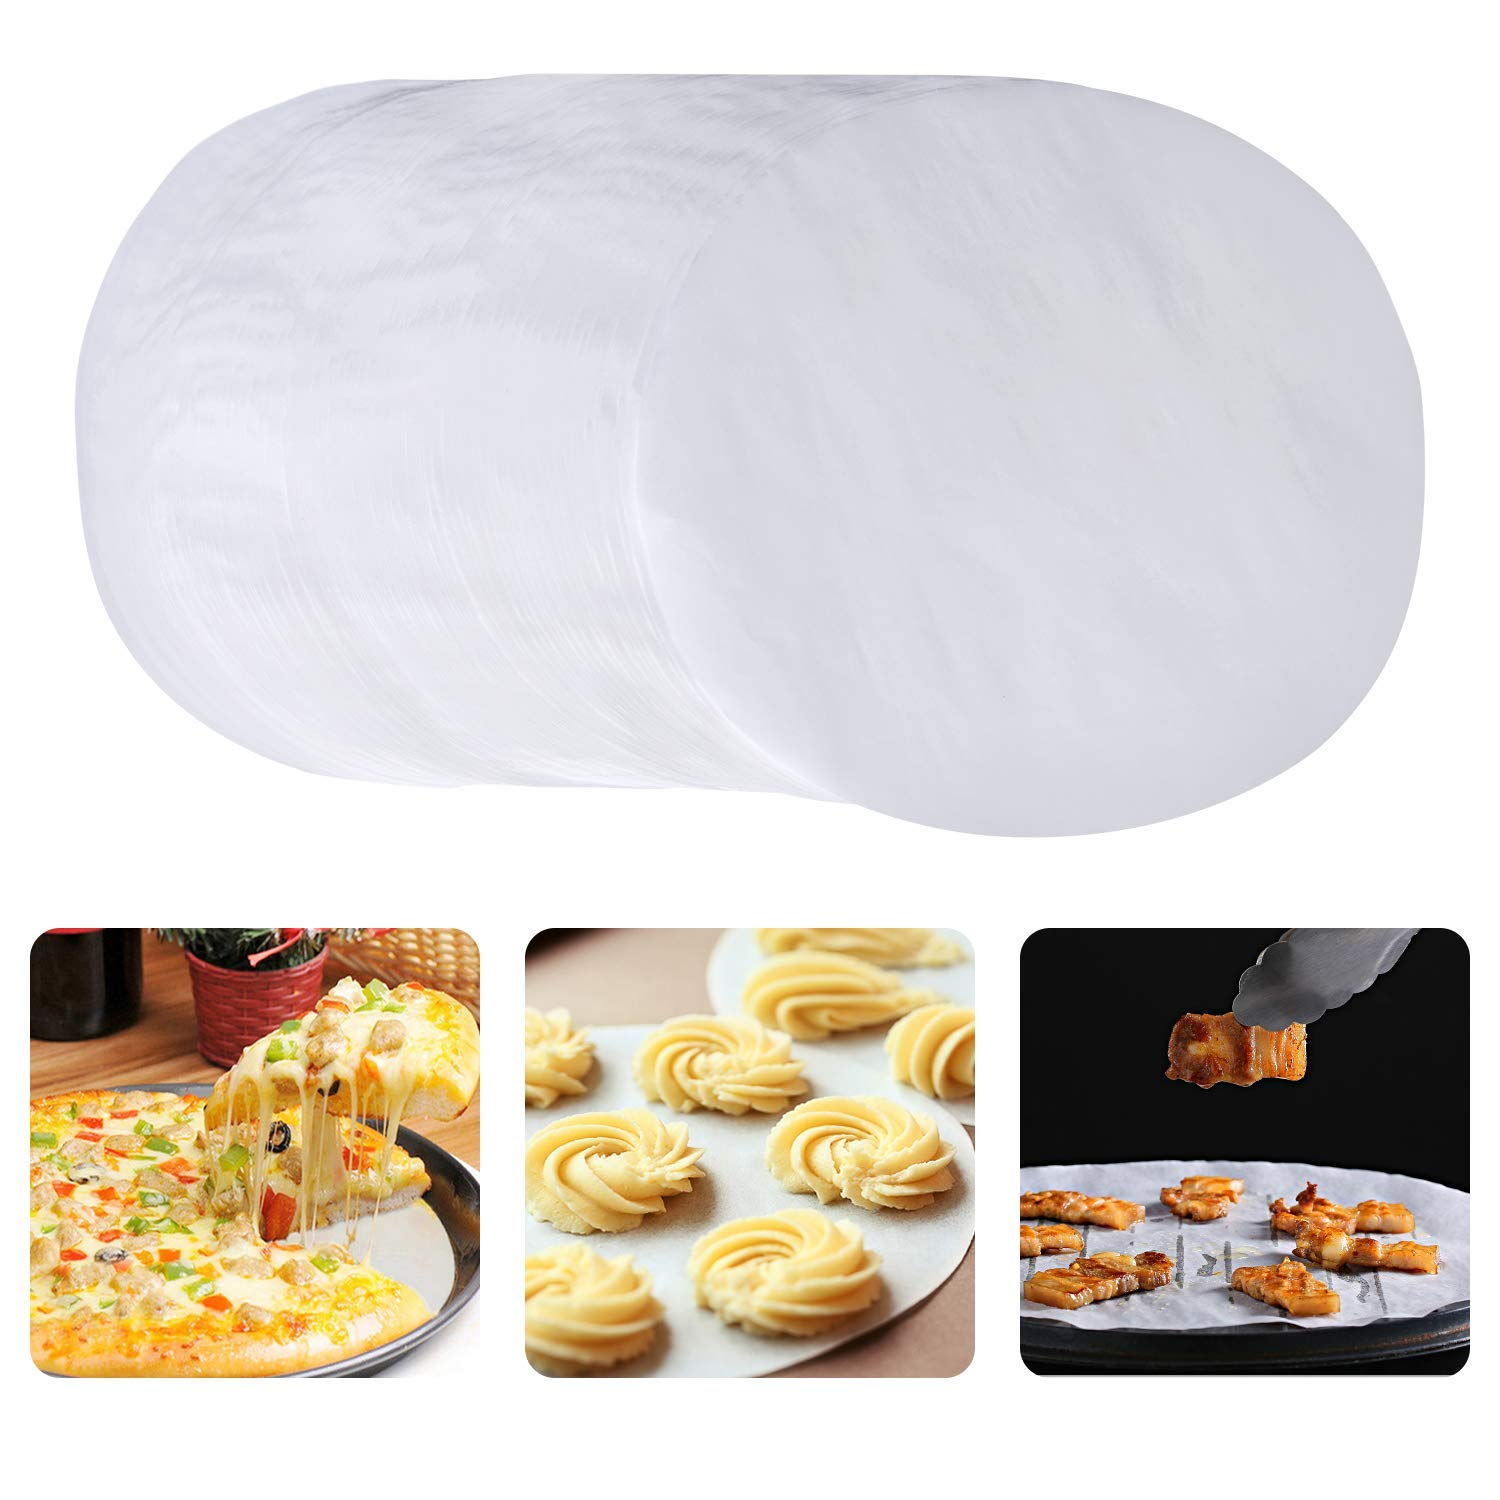 Baking Paper Liners for Baking Cakes Cooking Cheesecakes Parchment Paper Rounds 7 Inch Diameter Dutch Oven set of 100 Air Fryer Tortilla Press